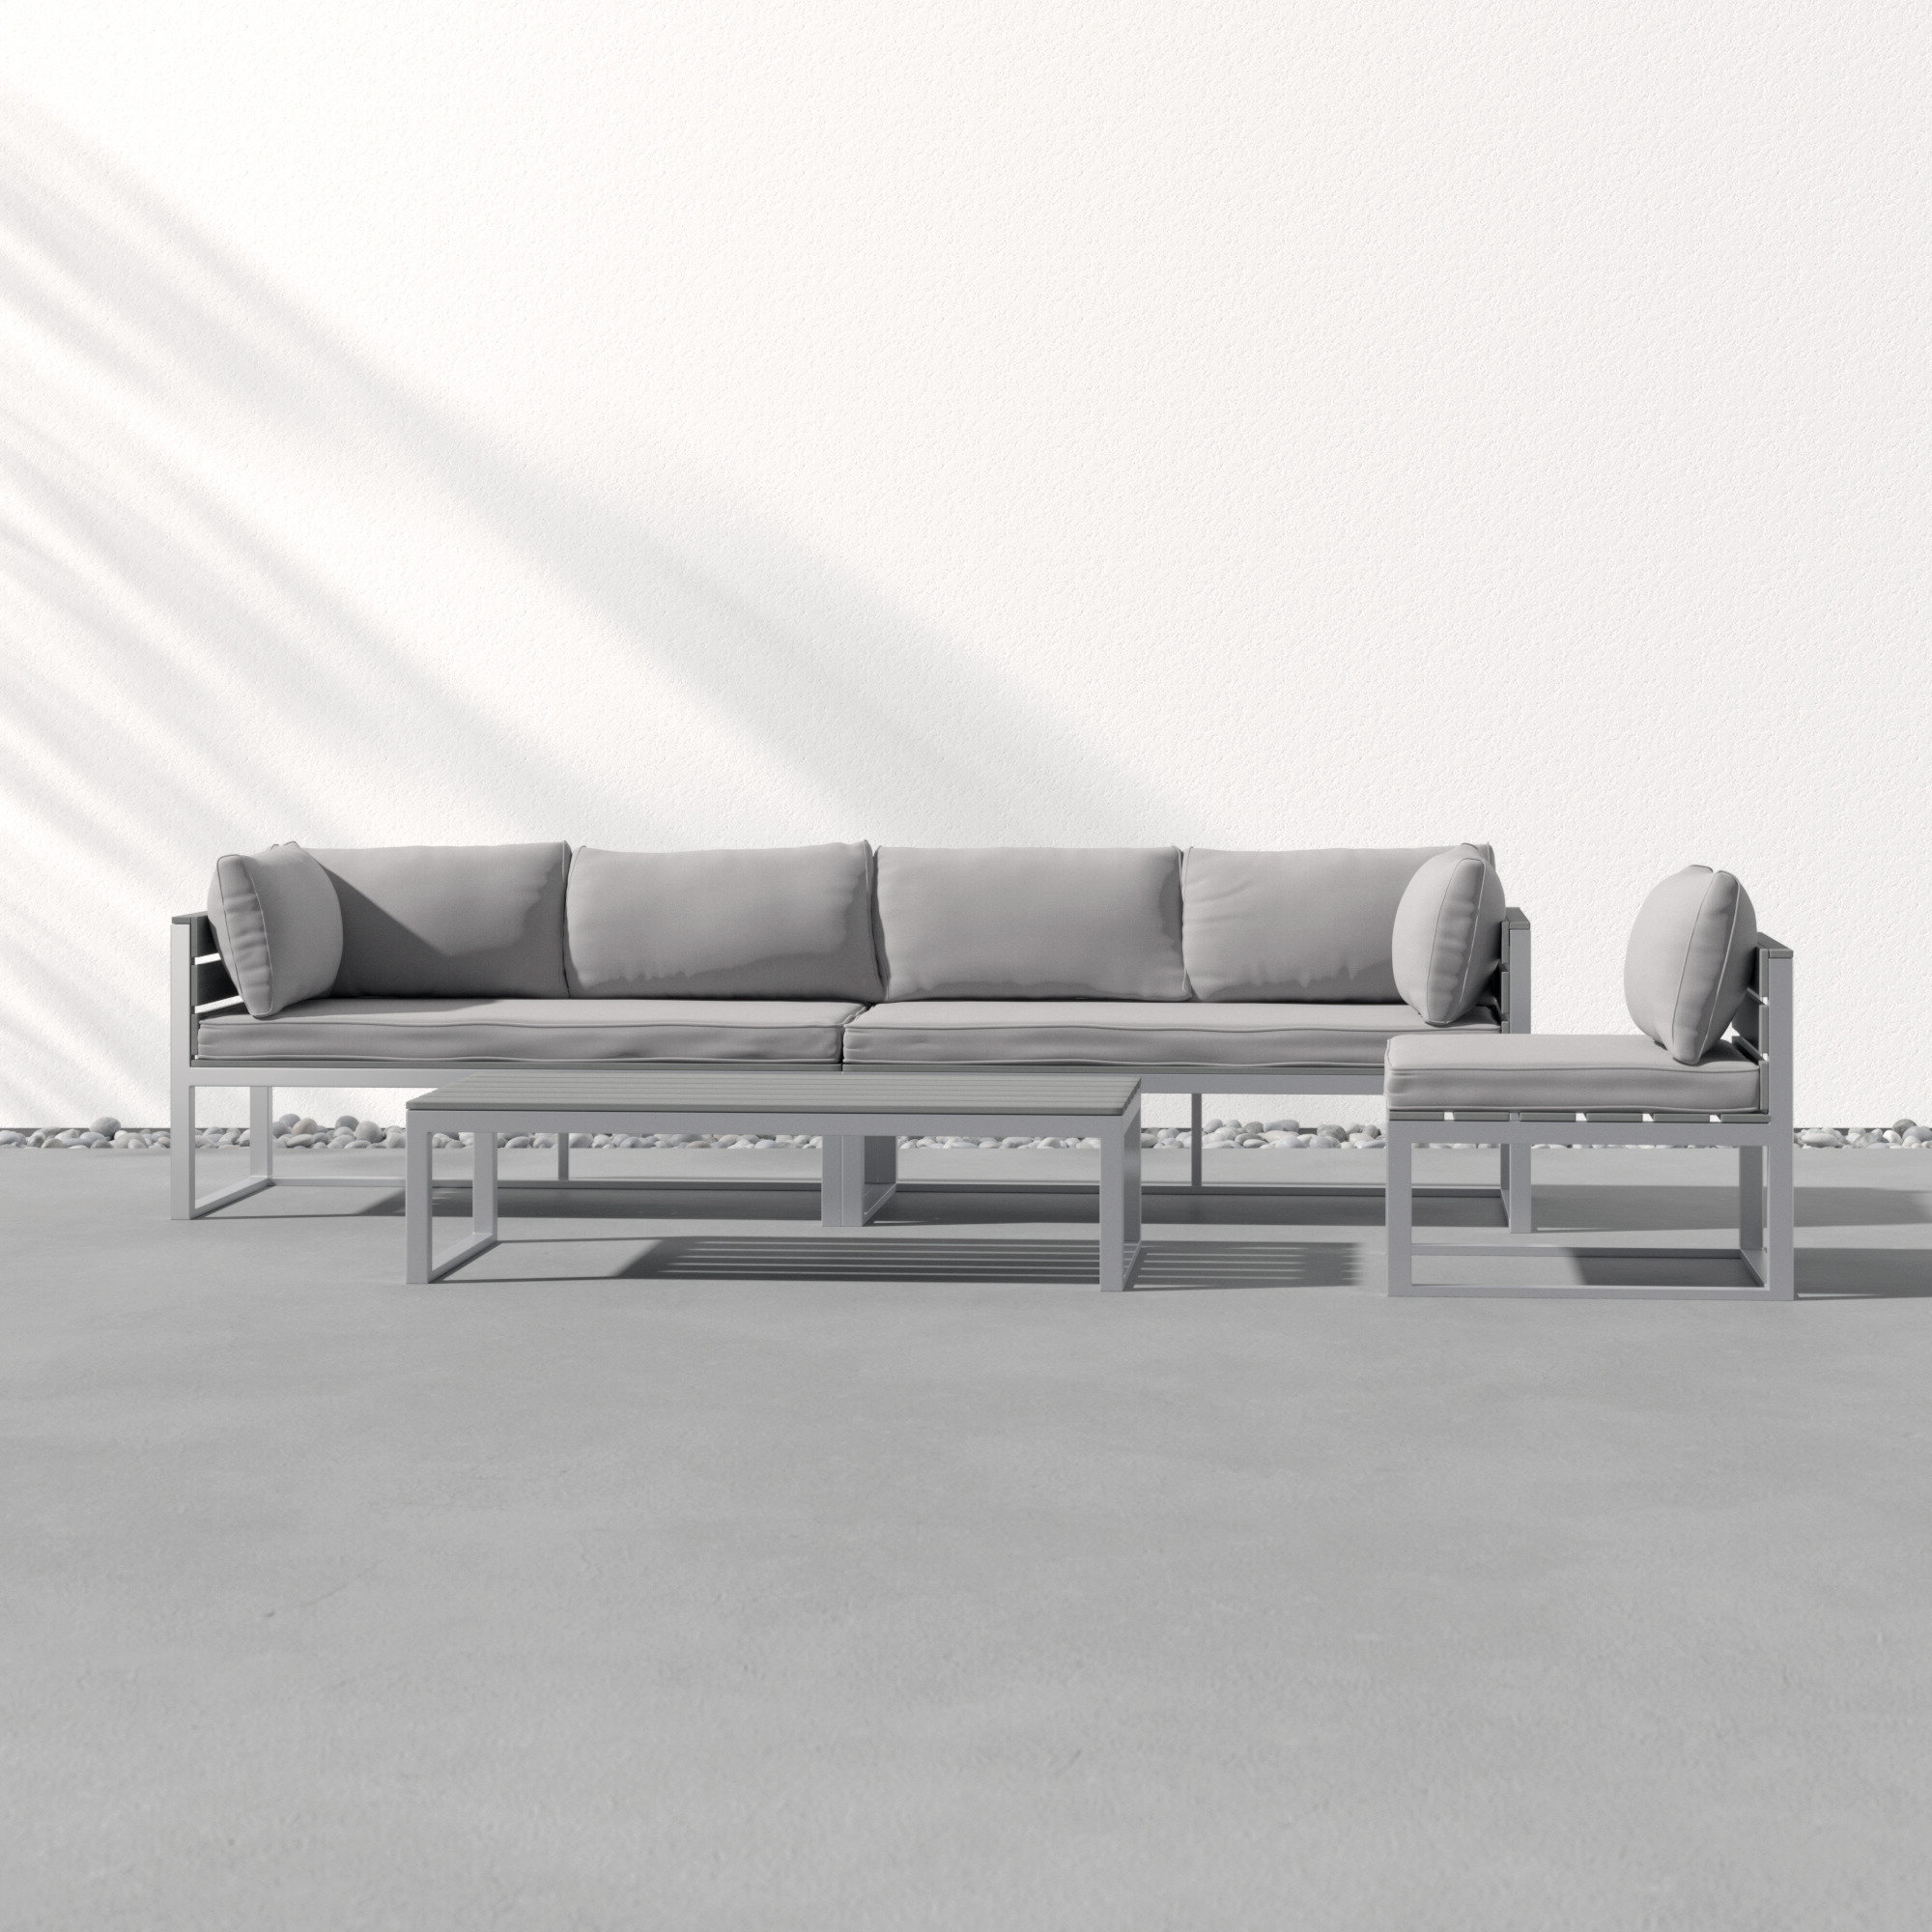 Brayden Studio Castleford 4 Piece Sectional Seating Group With Cushions Regarding 2020 Jimmie 3 Piece Sectionals Seating Group With Cushions (Gallery 12 of 25)